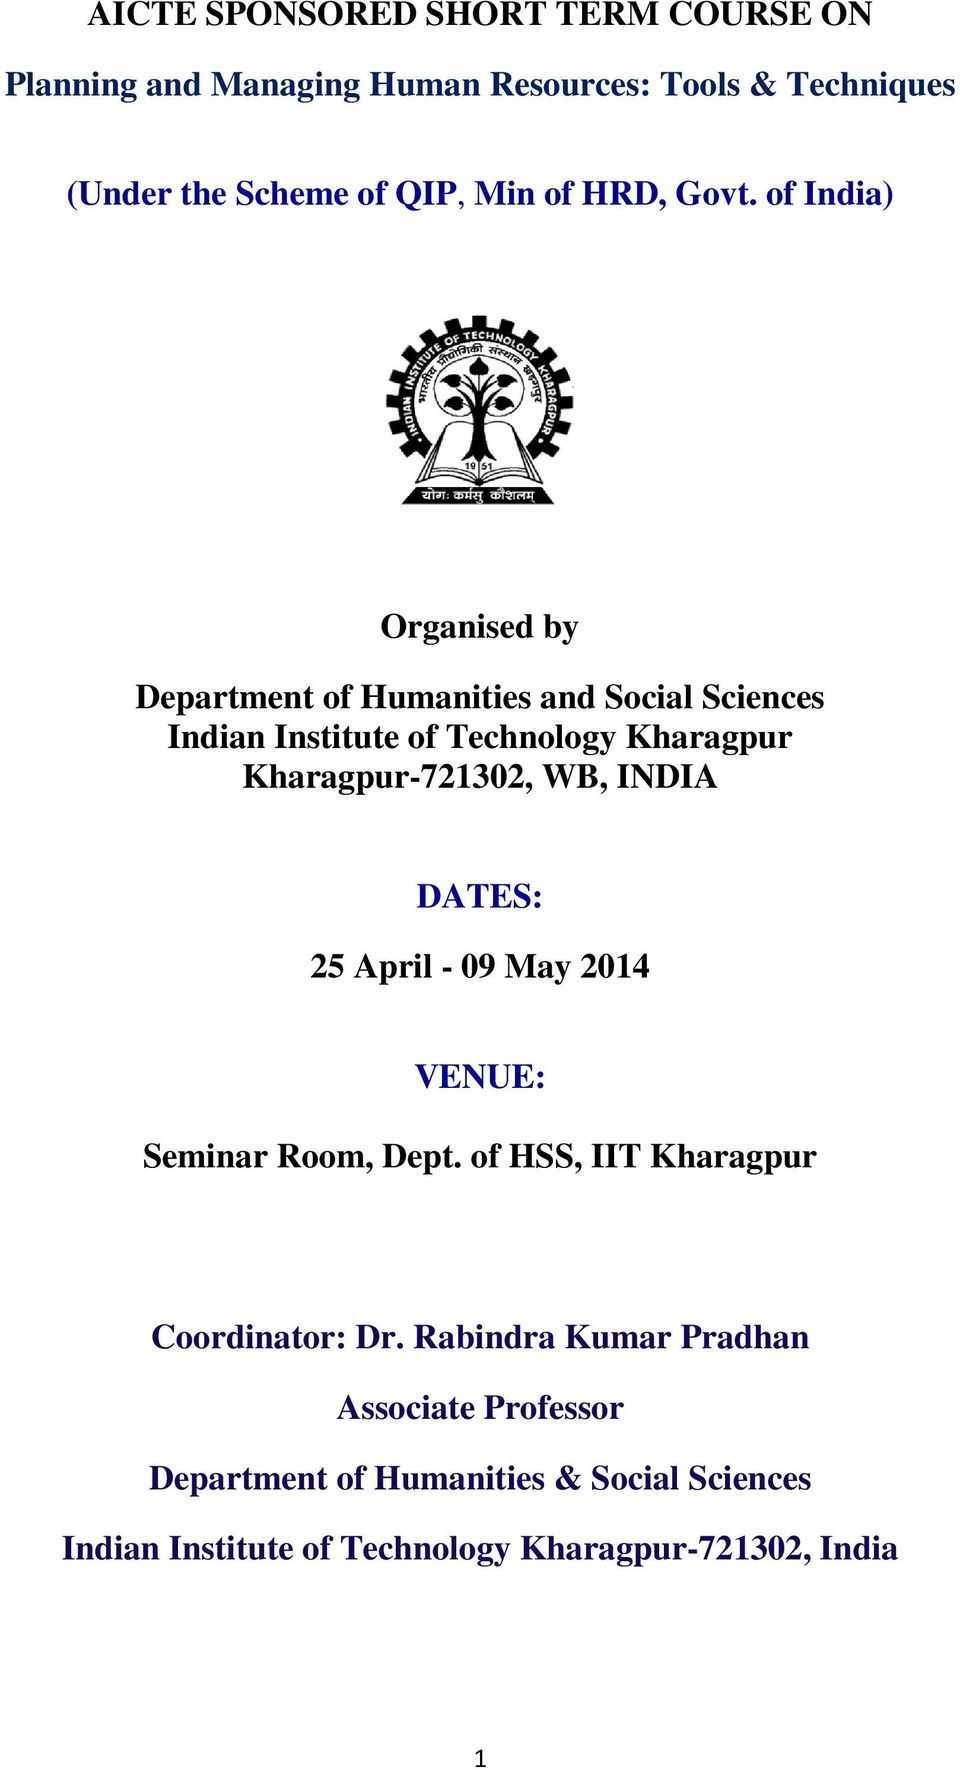 of India) Organised by Department of Humanities and Social Sciences Indian Institute of Technology Kharagpur Kharagpur-721302,